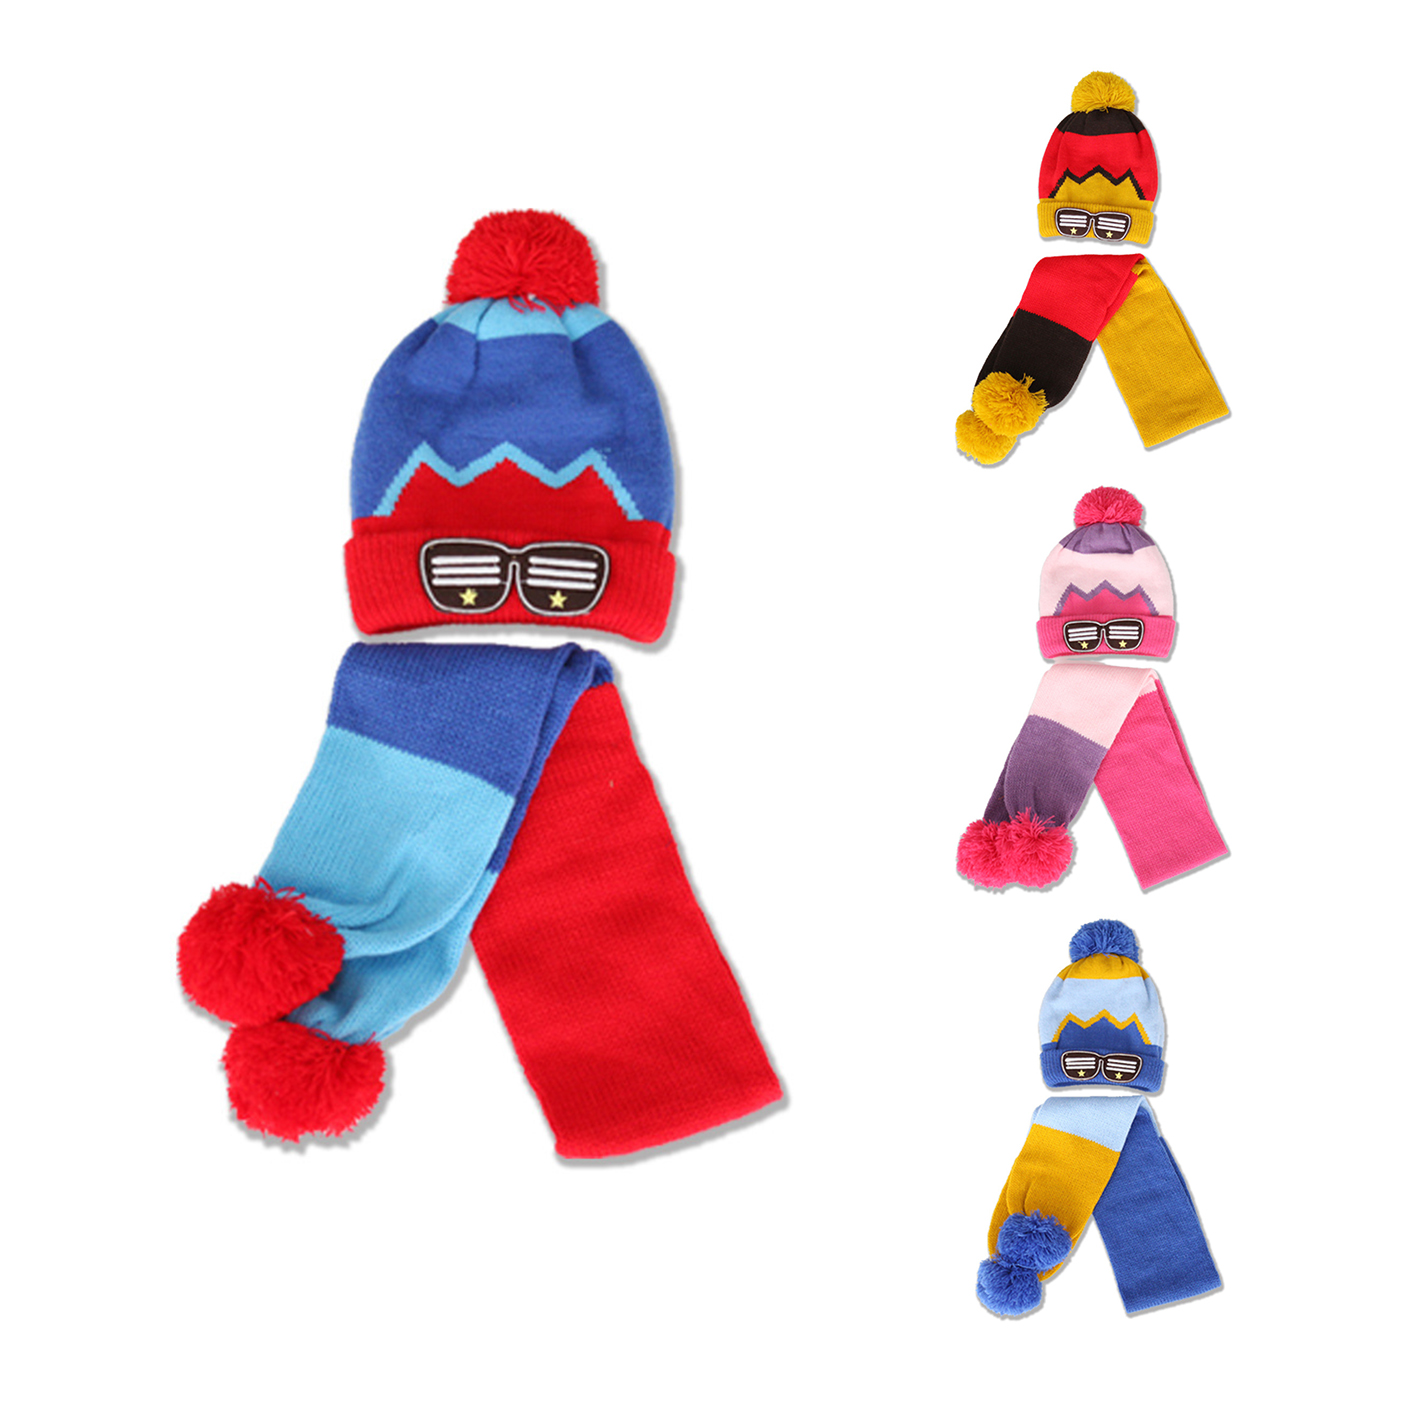 2PCS Knit Kids Hat Scarf Set Cotton Patchwork Baby Hat With Pom Pom Glasses Embroidery Boys Girls Beanies Winter Baby Hat Scarf